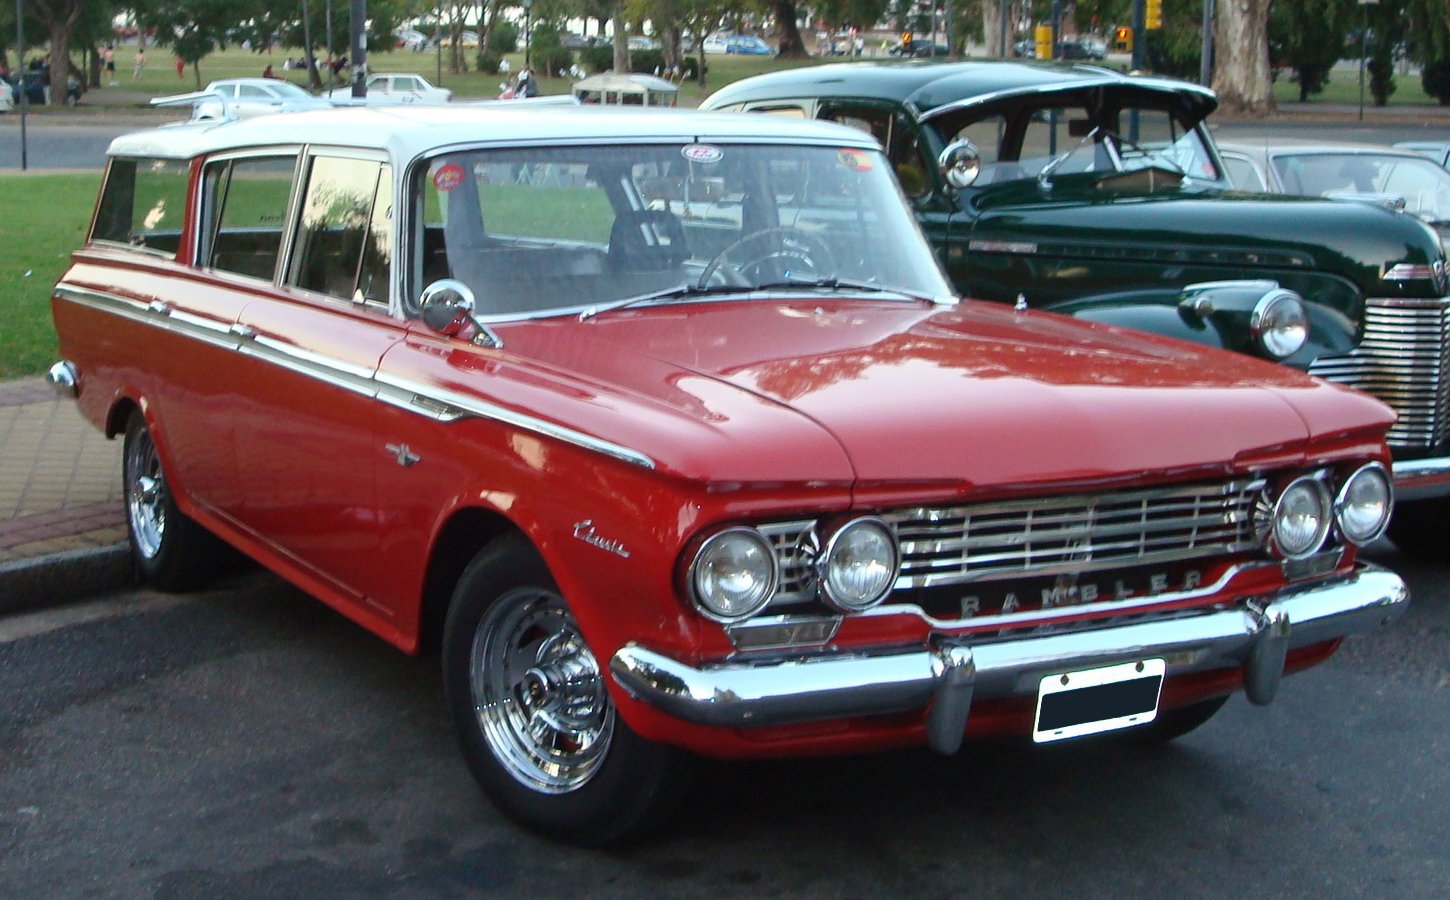 Classic Cars For Sale In My Area